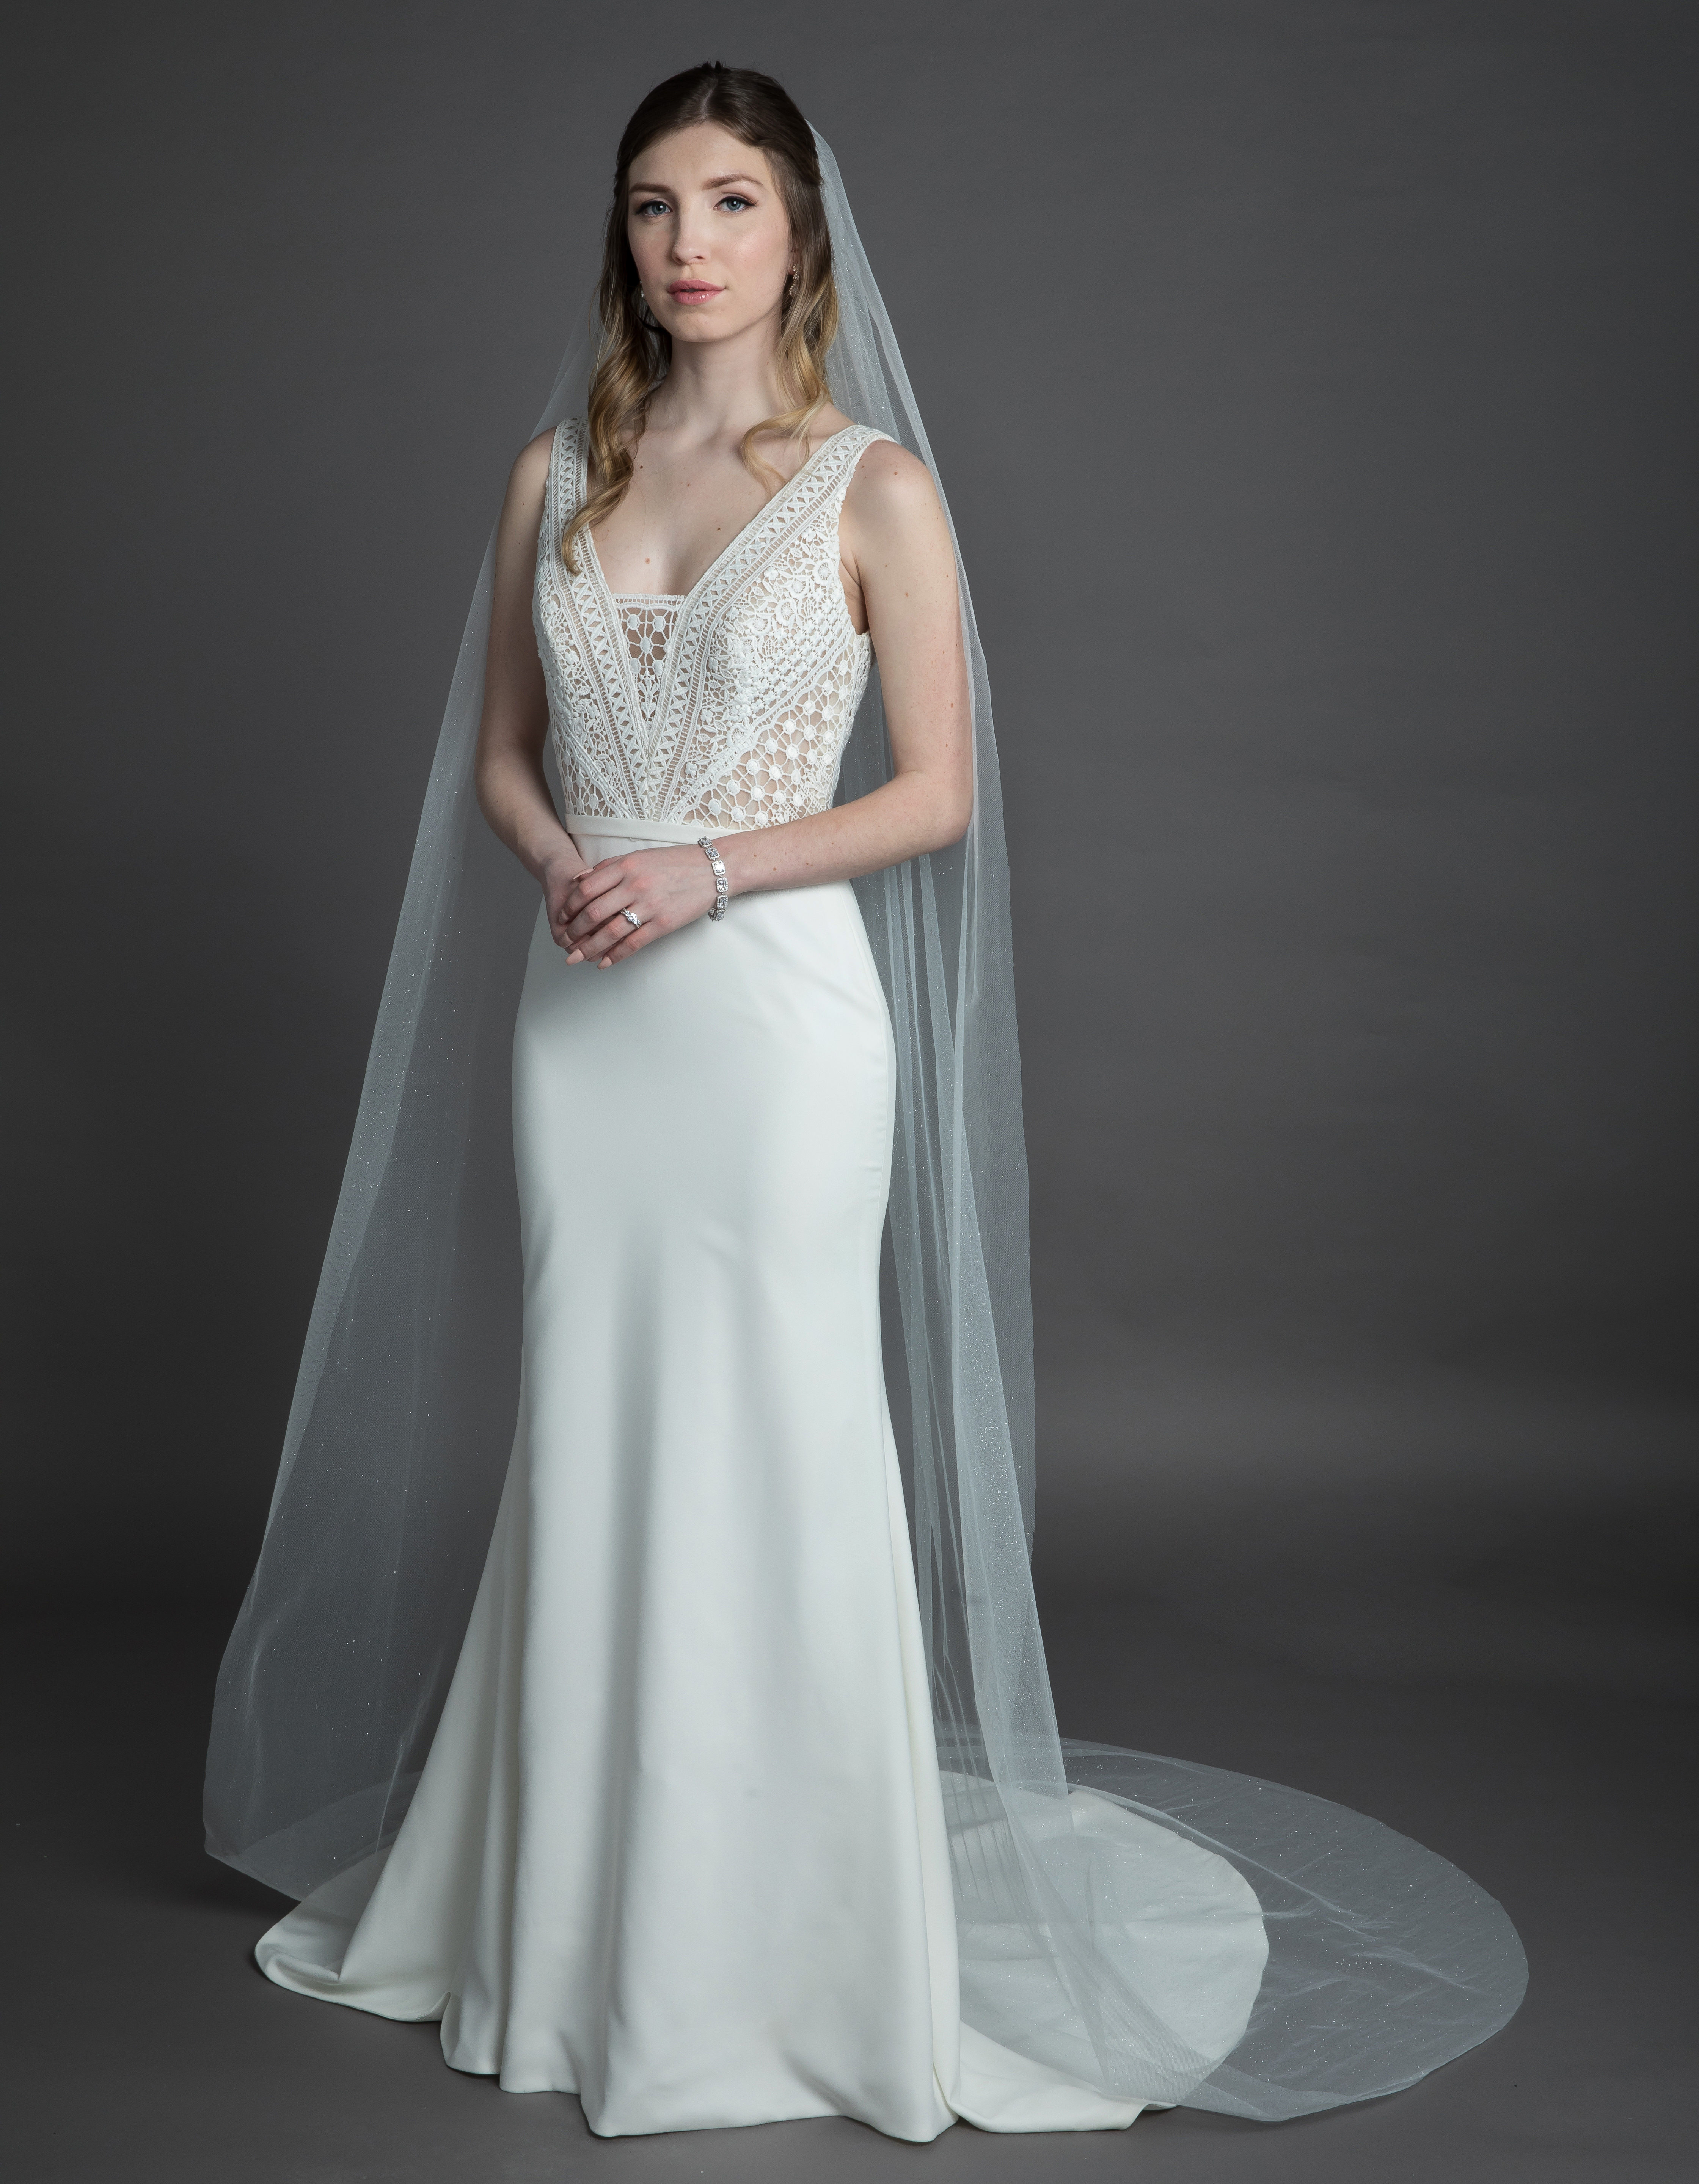 Bridal Classics Marquise Veil Collection MV-2474